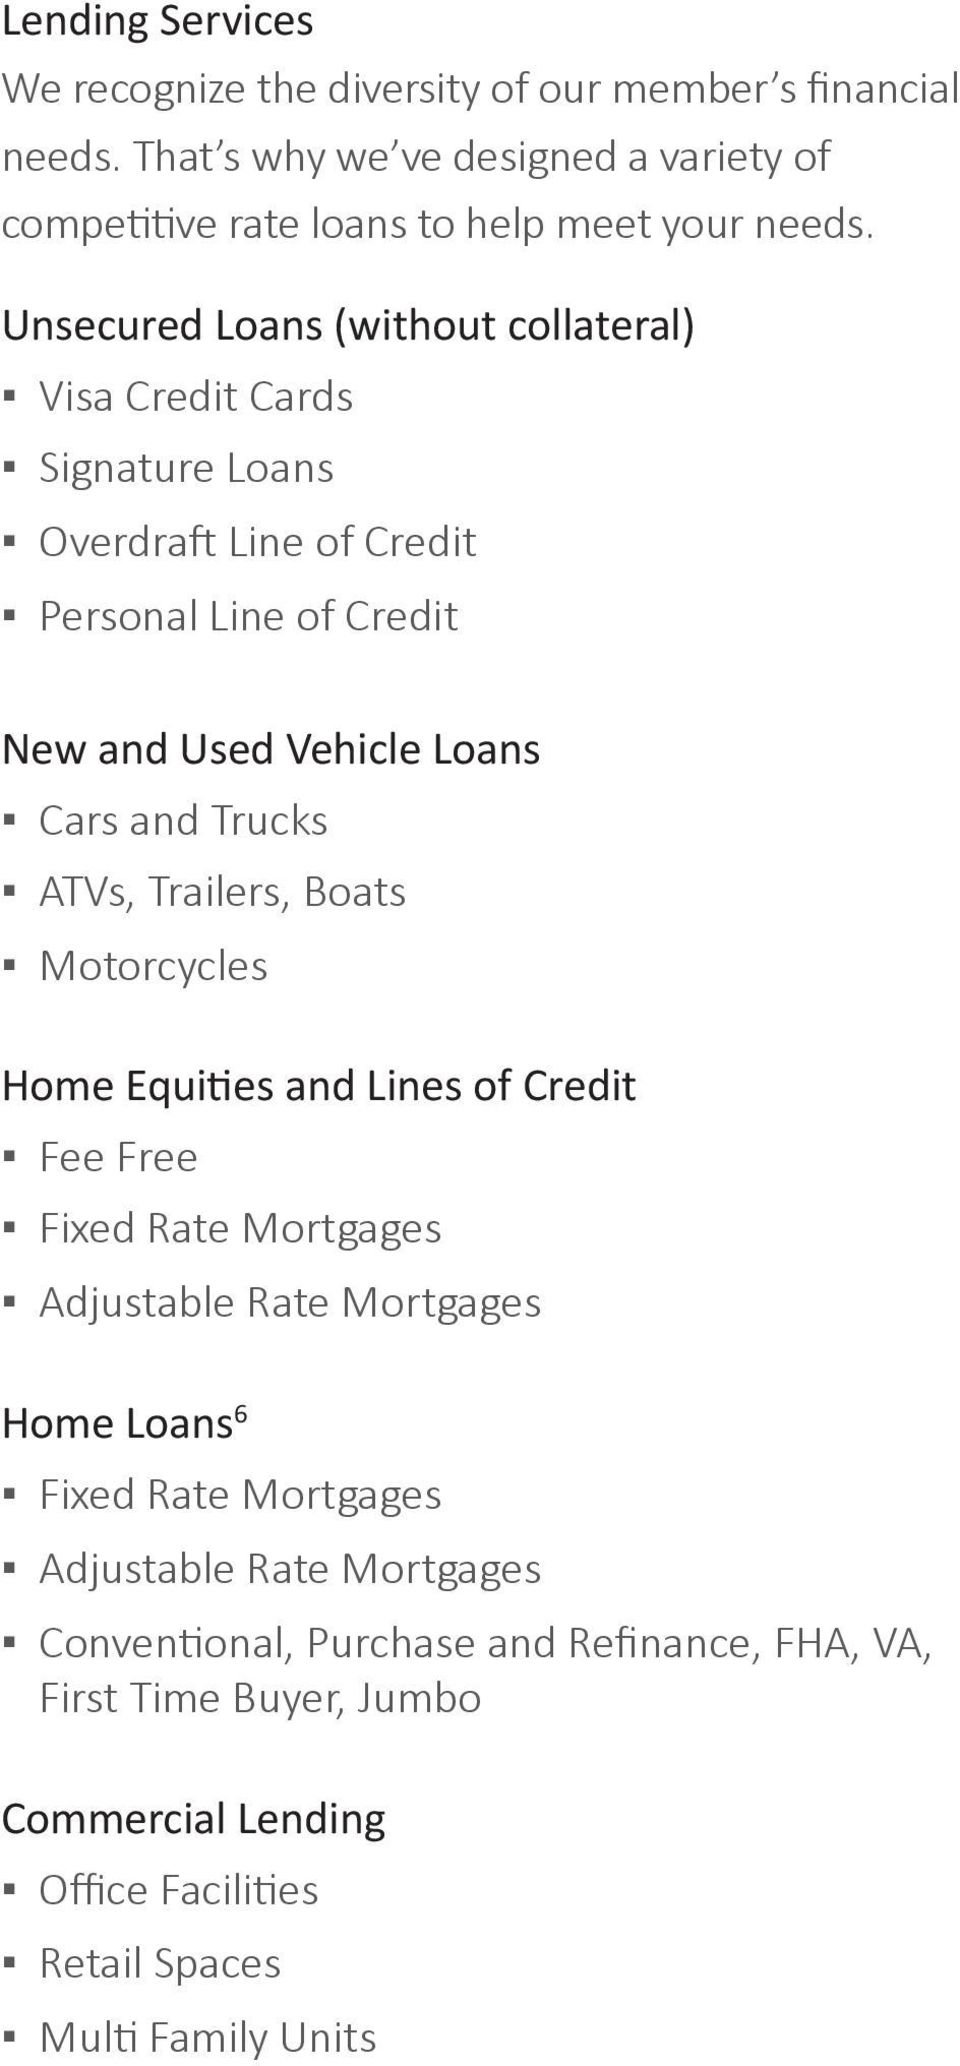 ATVs, Trailers, Boats Motorcycles Home Equities and Lines of Credit Fee Free Fixed Rate Mortgages Adjustable Rate Mortgages Home Loans 6 Fixed Rate Mortgages